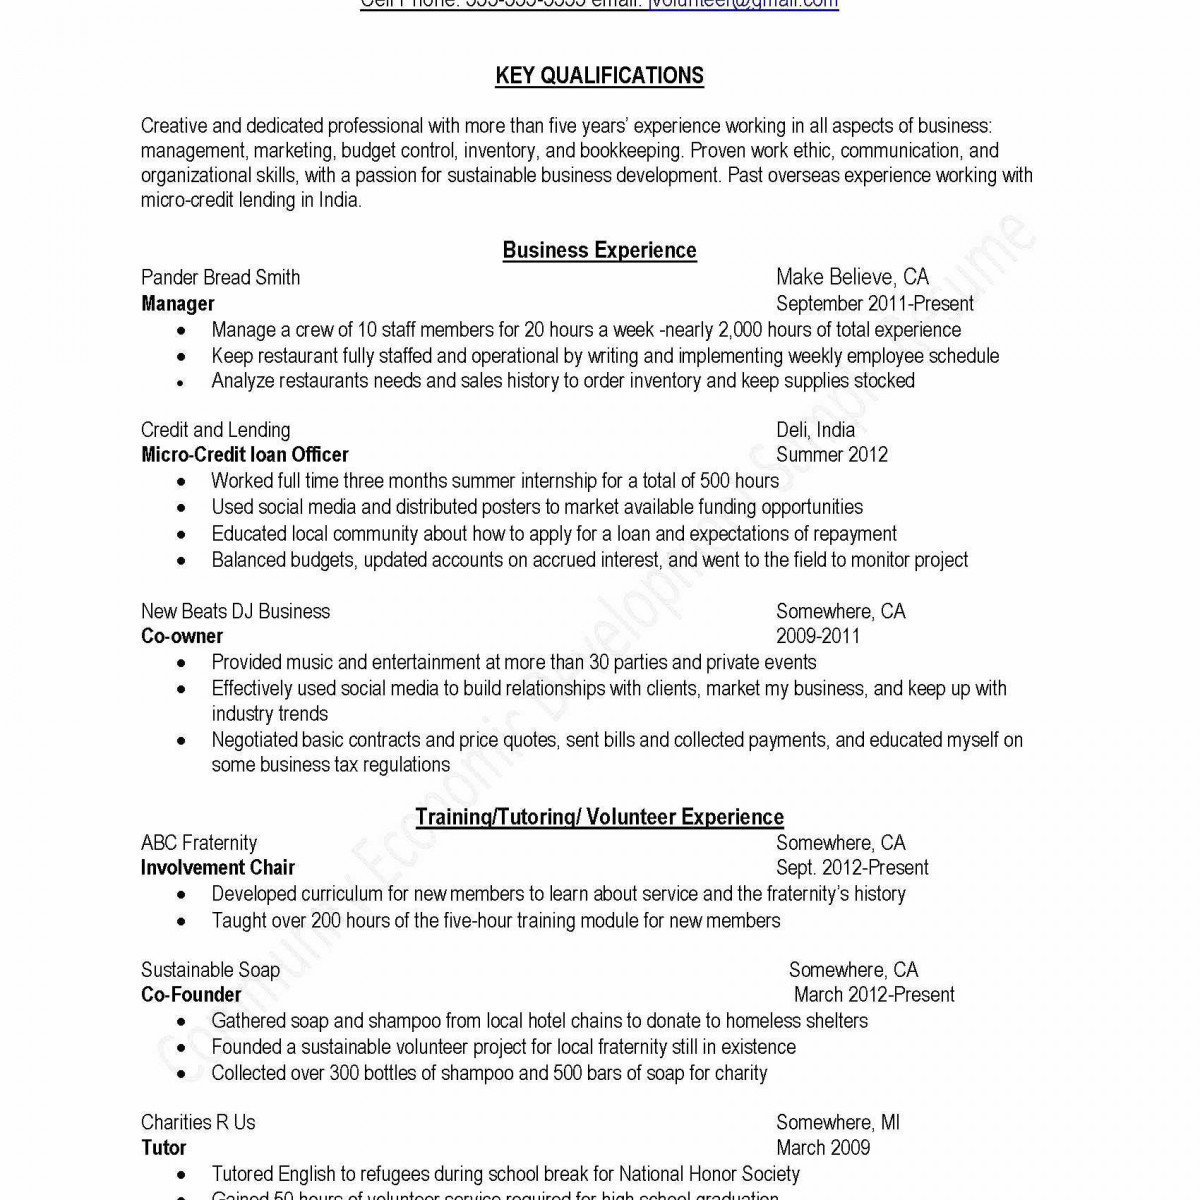 Resume Preparation Service - 36 Charming How to Make Resume for College Application N8z